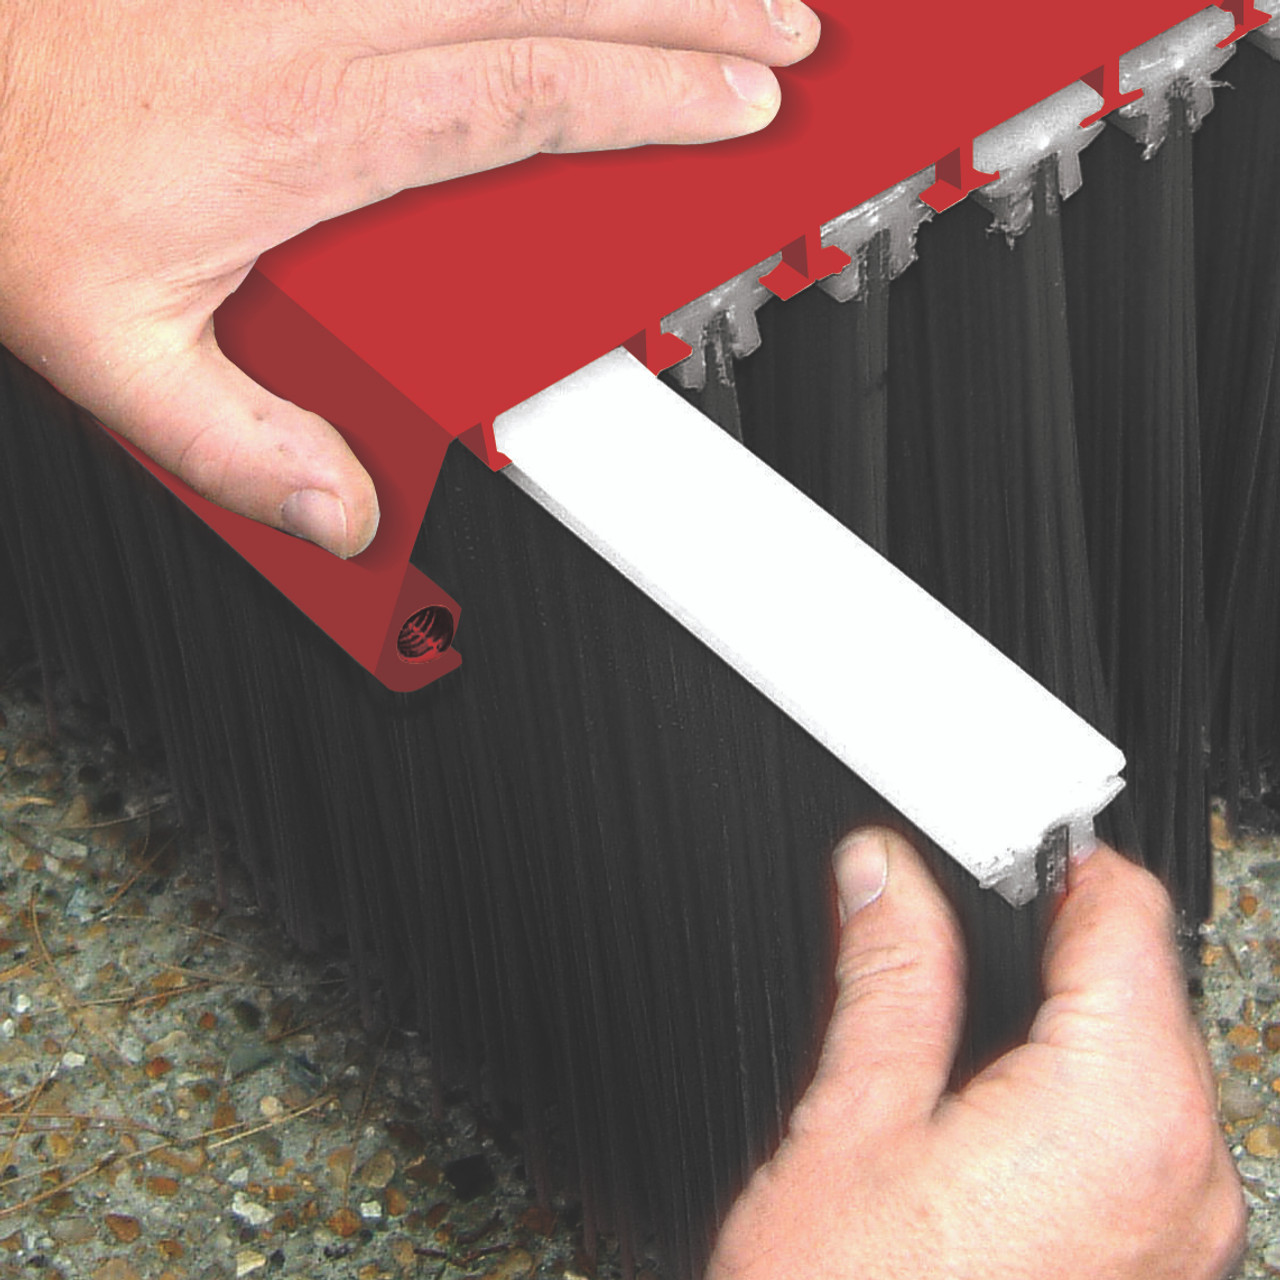 Forklift Mounted Broom - Value Series Replacing Brushes